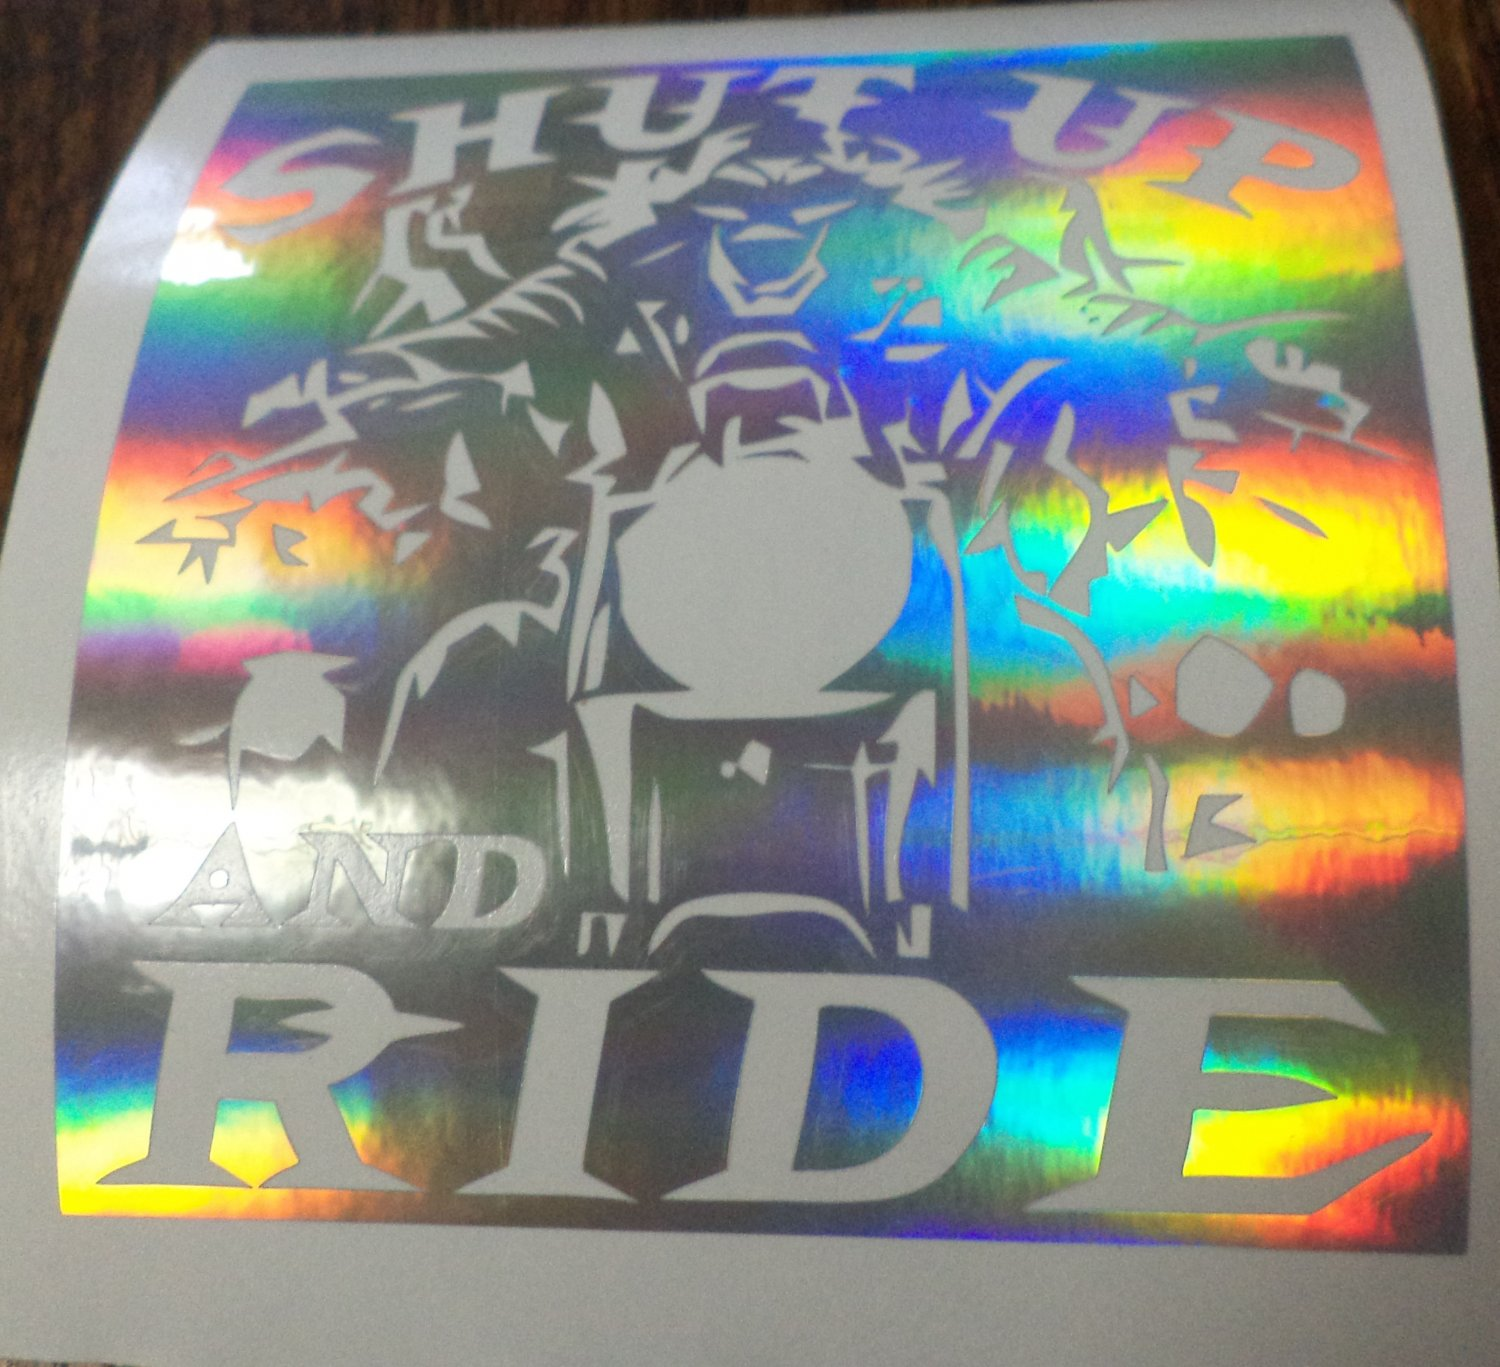 Holographic Shutup And Ride Biker Motorcycle Vinyl Car Window Laptop Decal Sticker